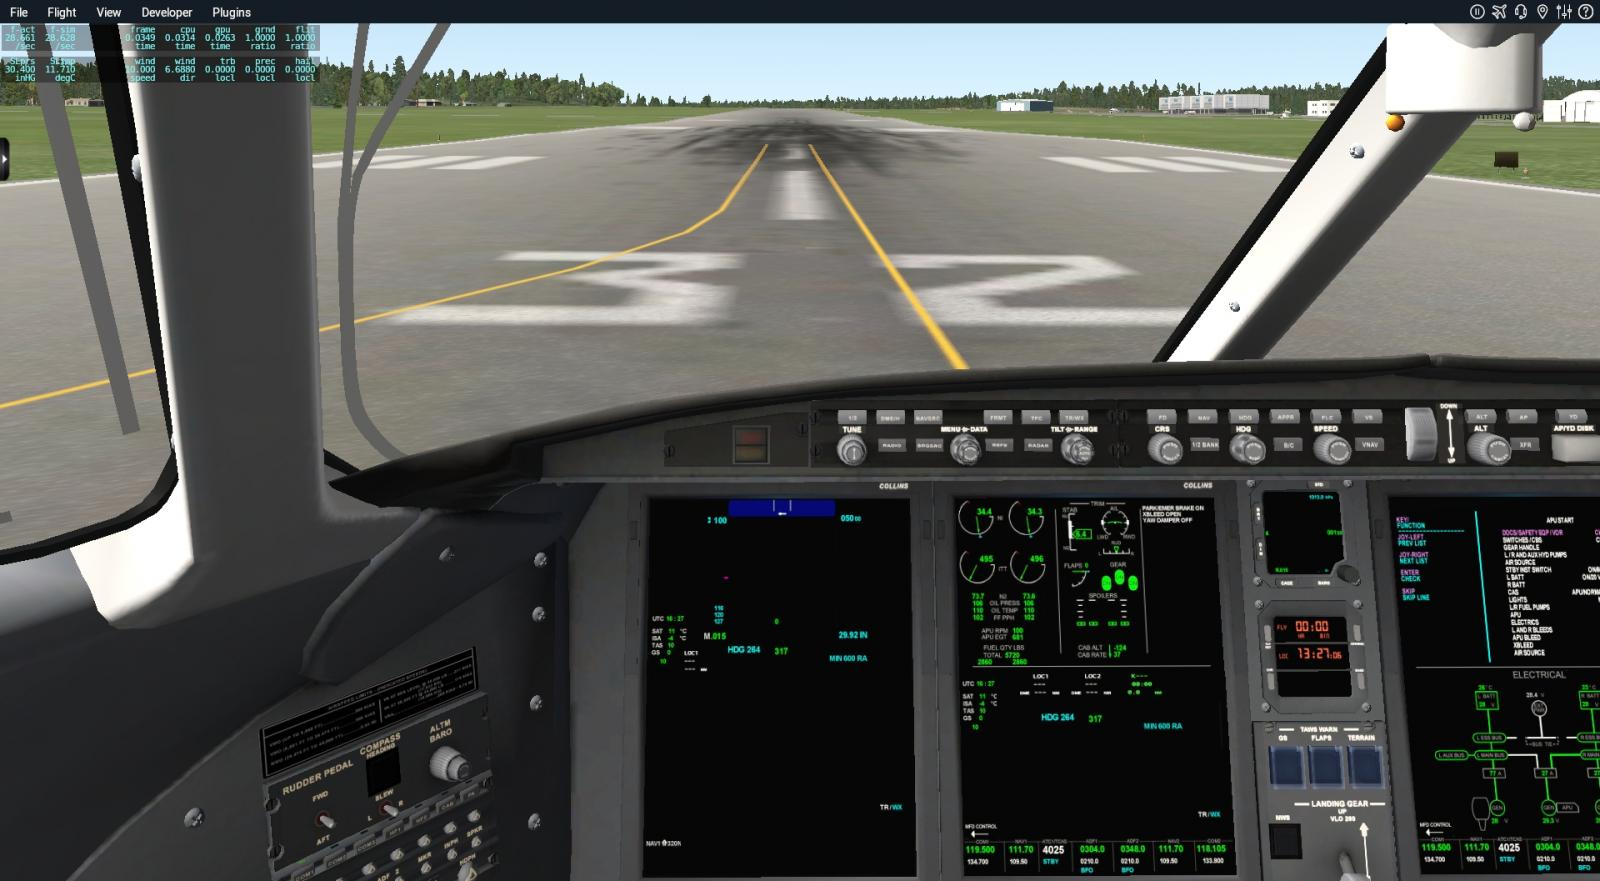 X-Plane BETA 11 10B1 First Impressions - Page 3 - XP11 General